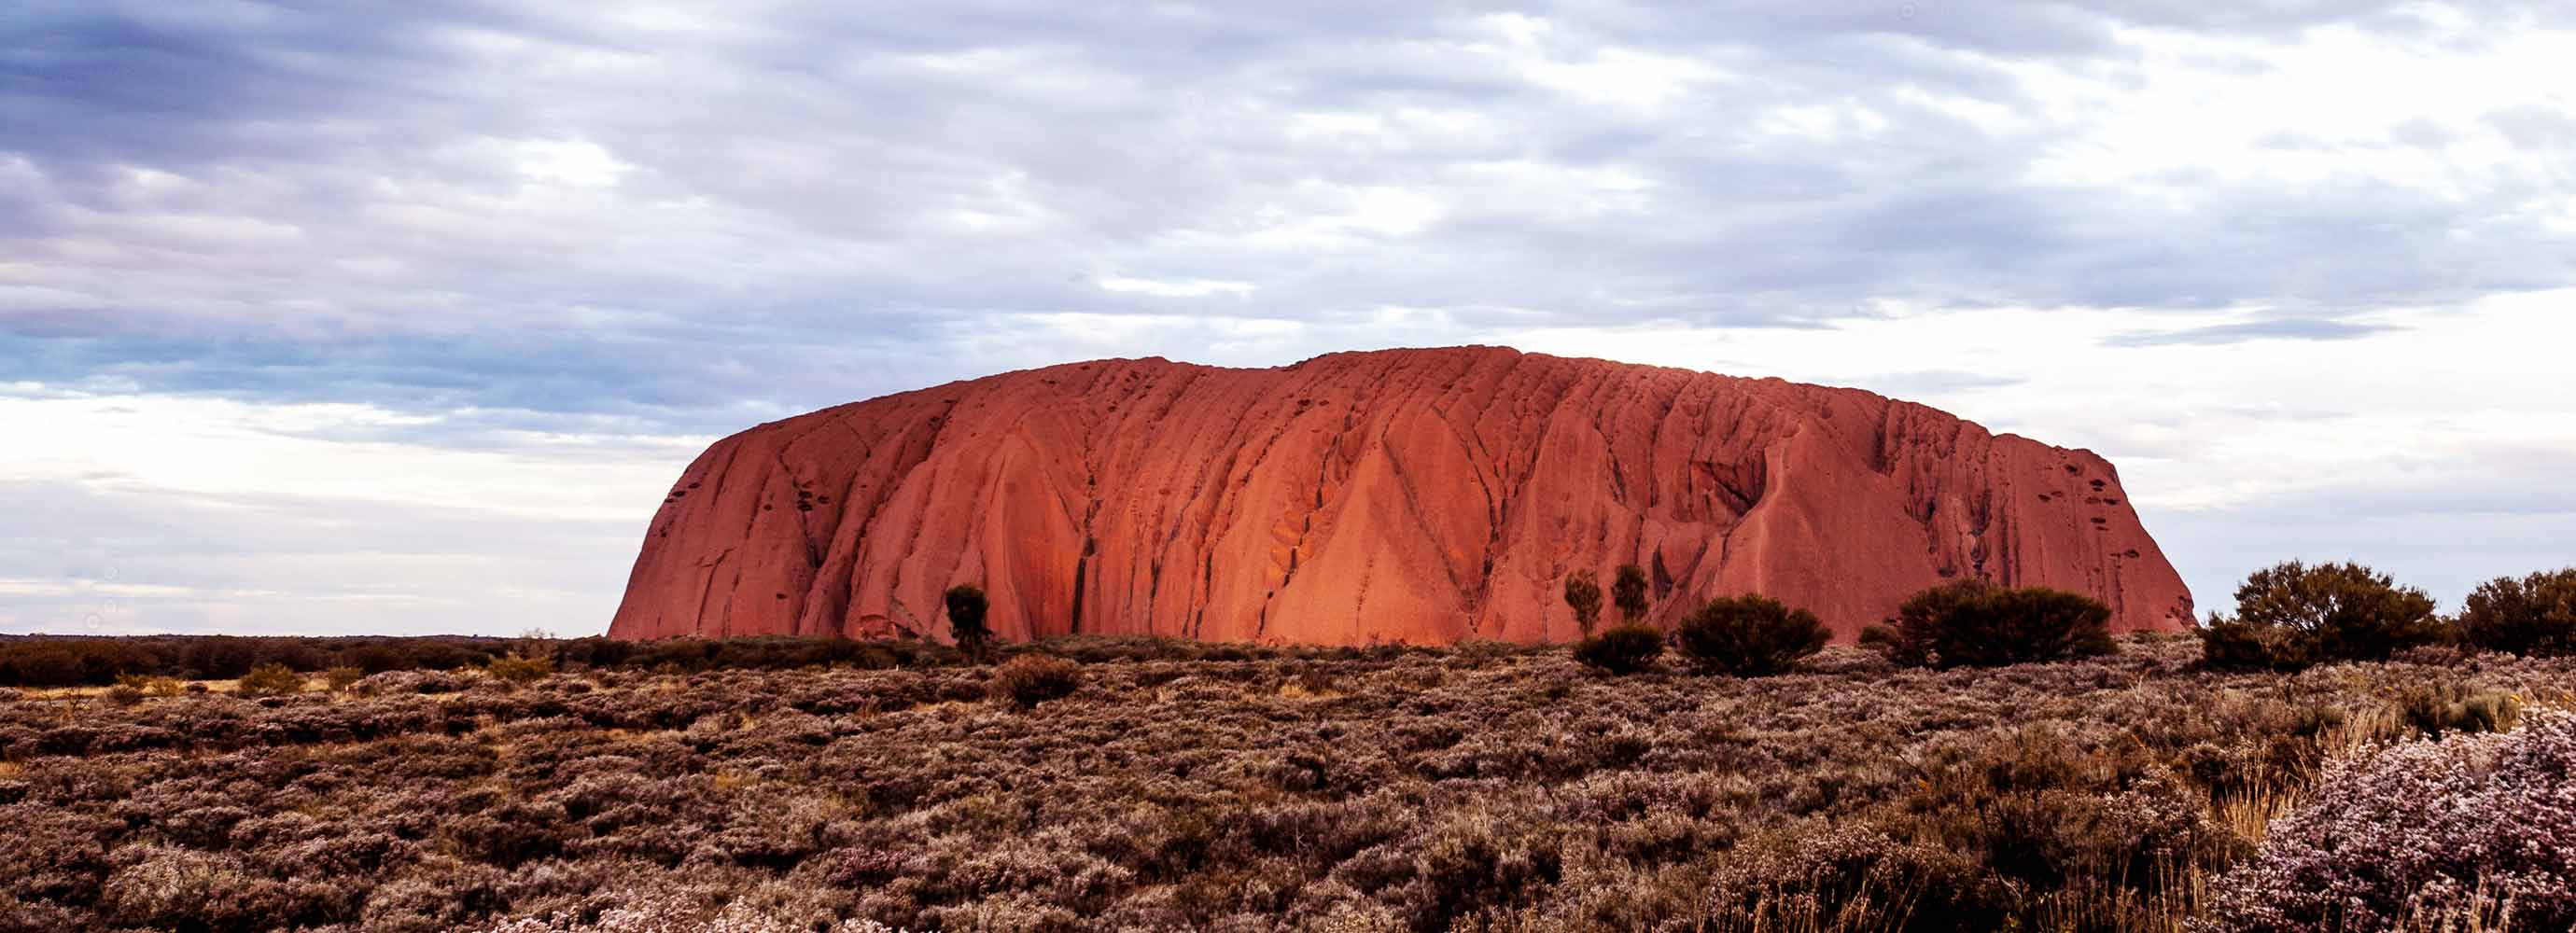 Where is ayers rock uluru facts hotels plan your trip to luxury lodges of australia publicscrutiny Gallery